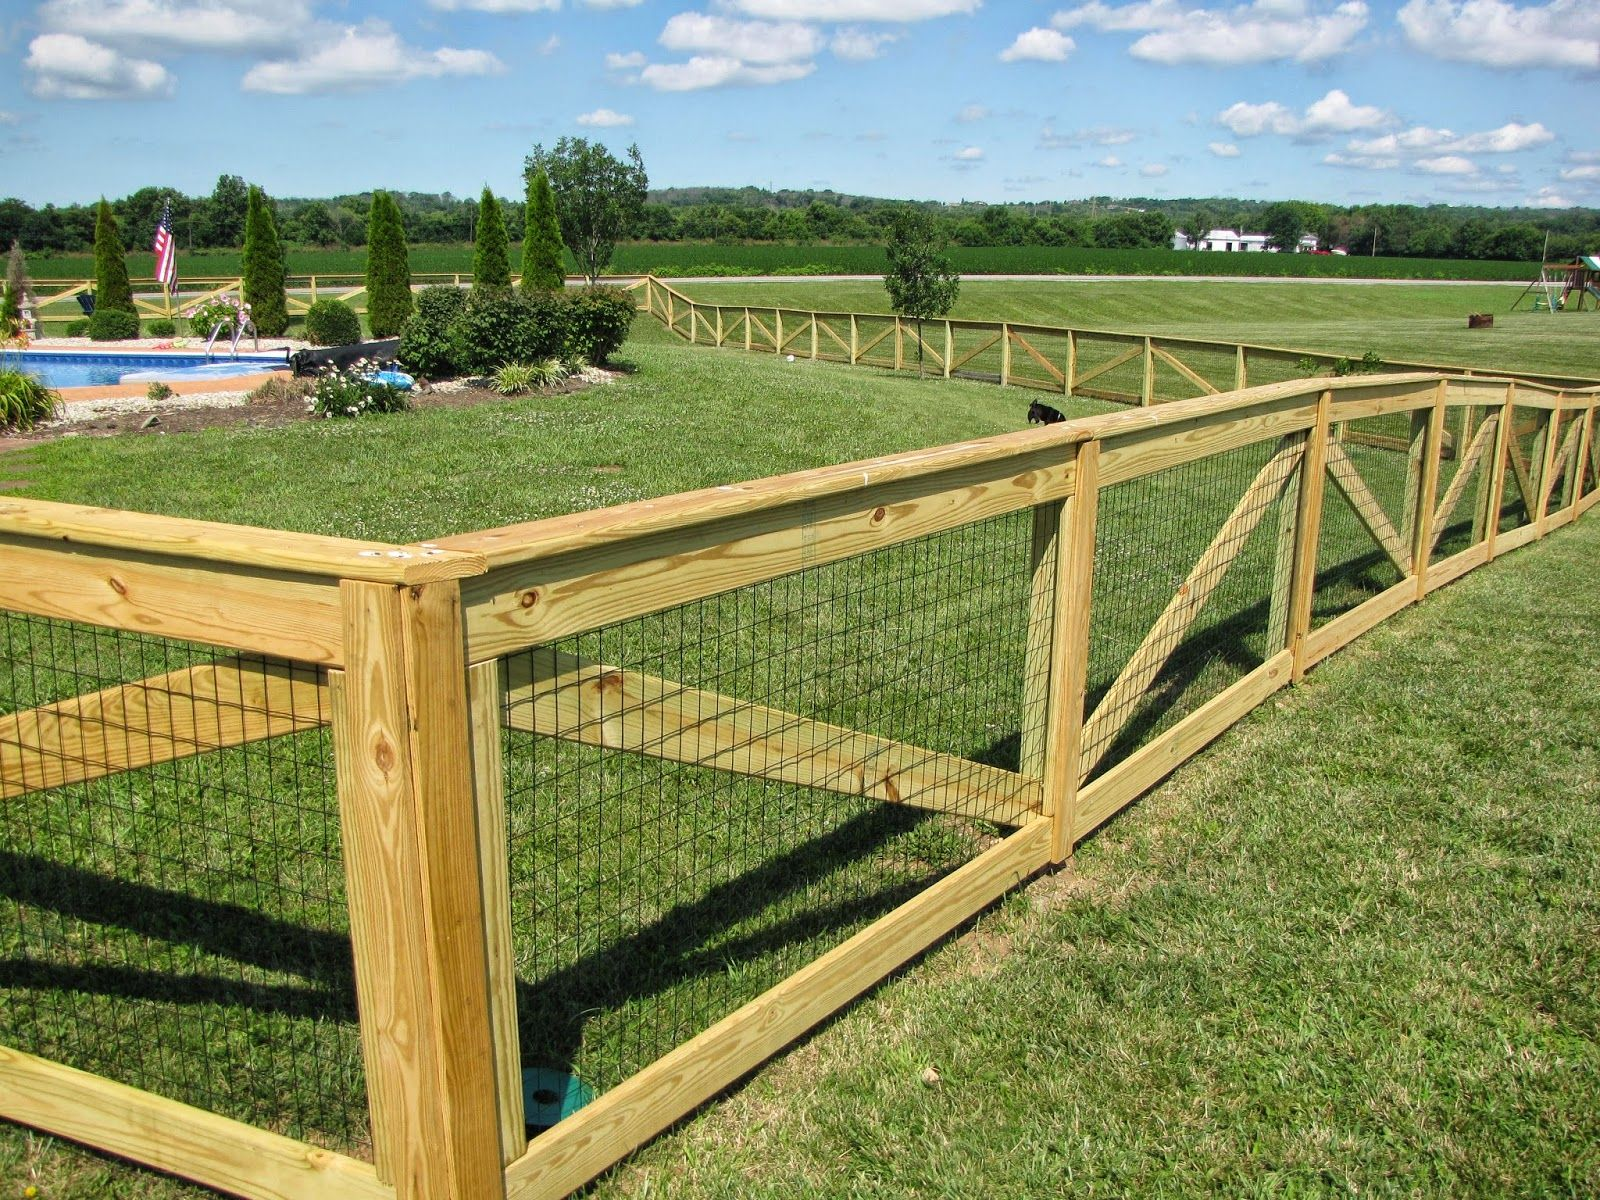 Elegant New Diy Dog Fence : DIY Dog Fence In The Yard U2013 Design And Ideas .